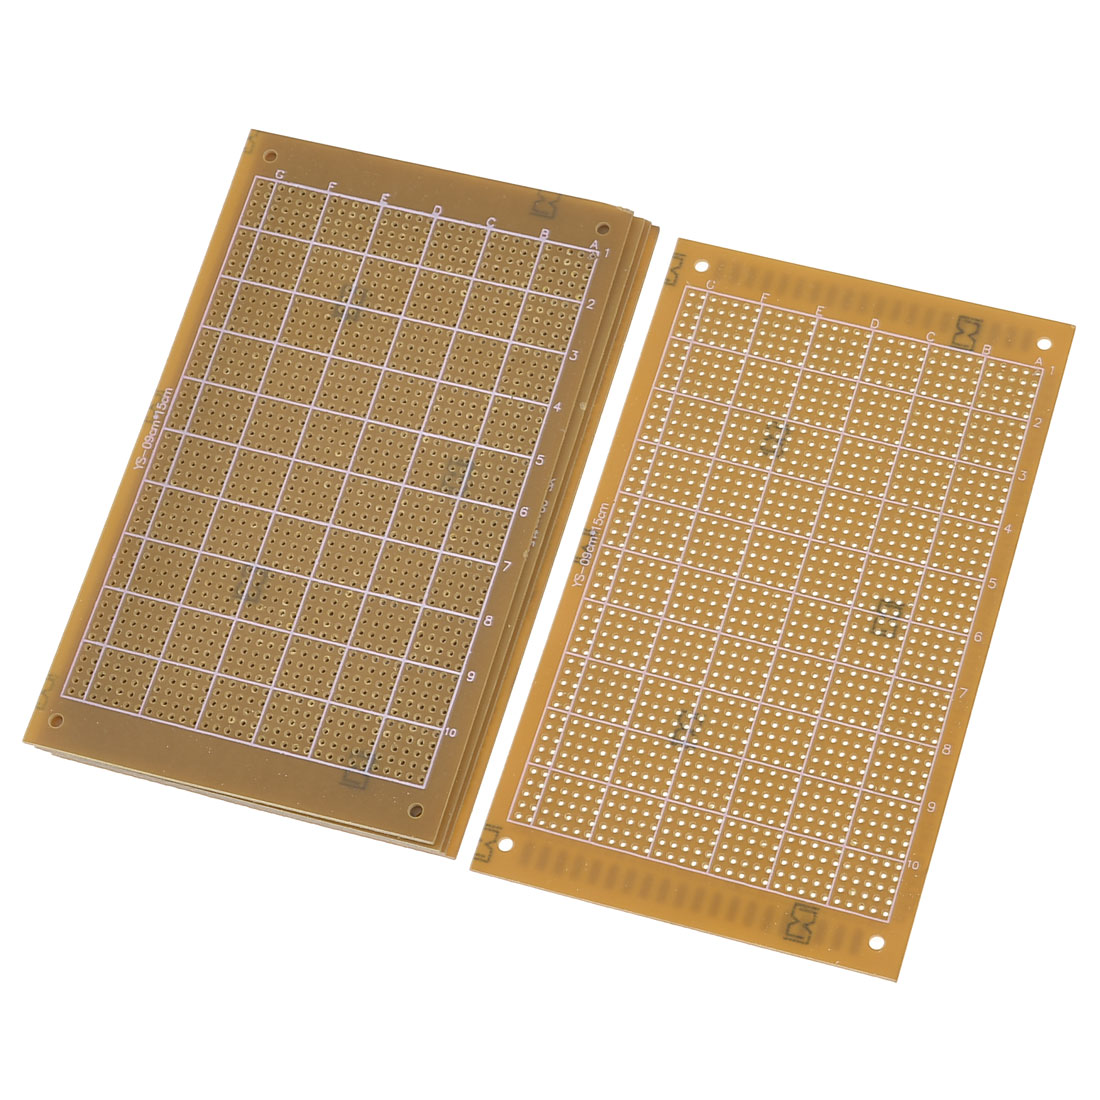 5 x Brown Single Side Copper Panel Prototype PCB Board 15 x 9cm